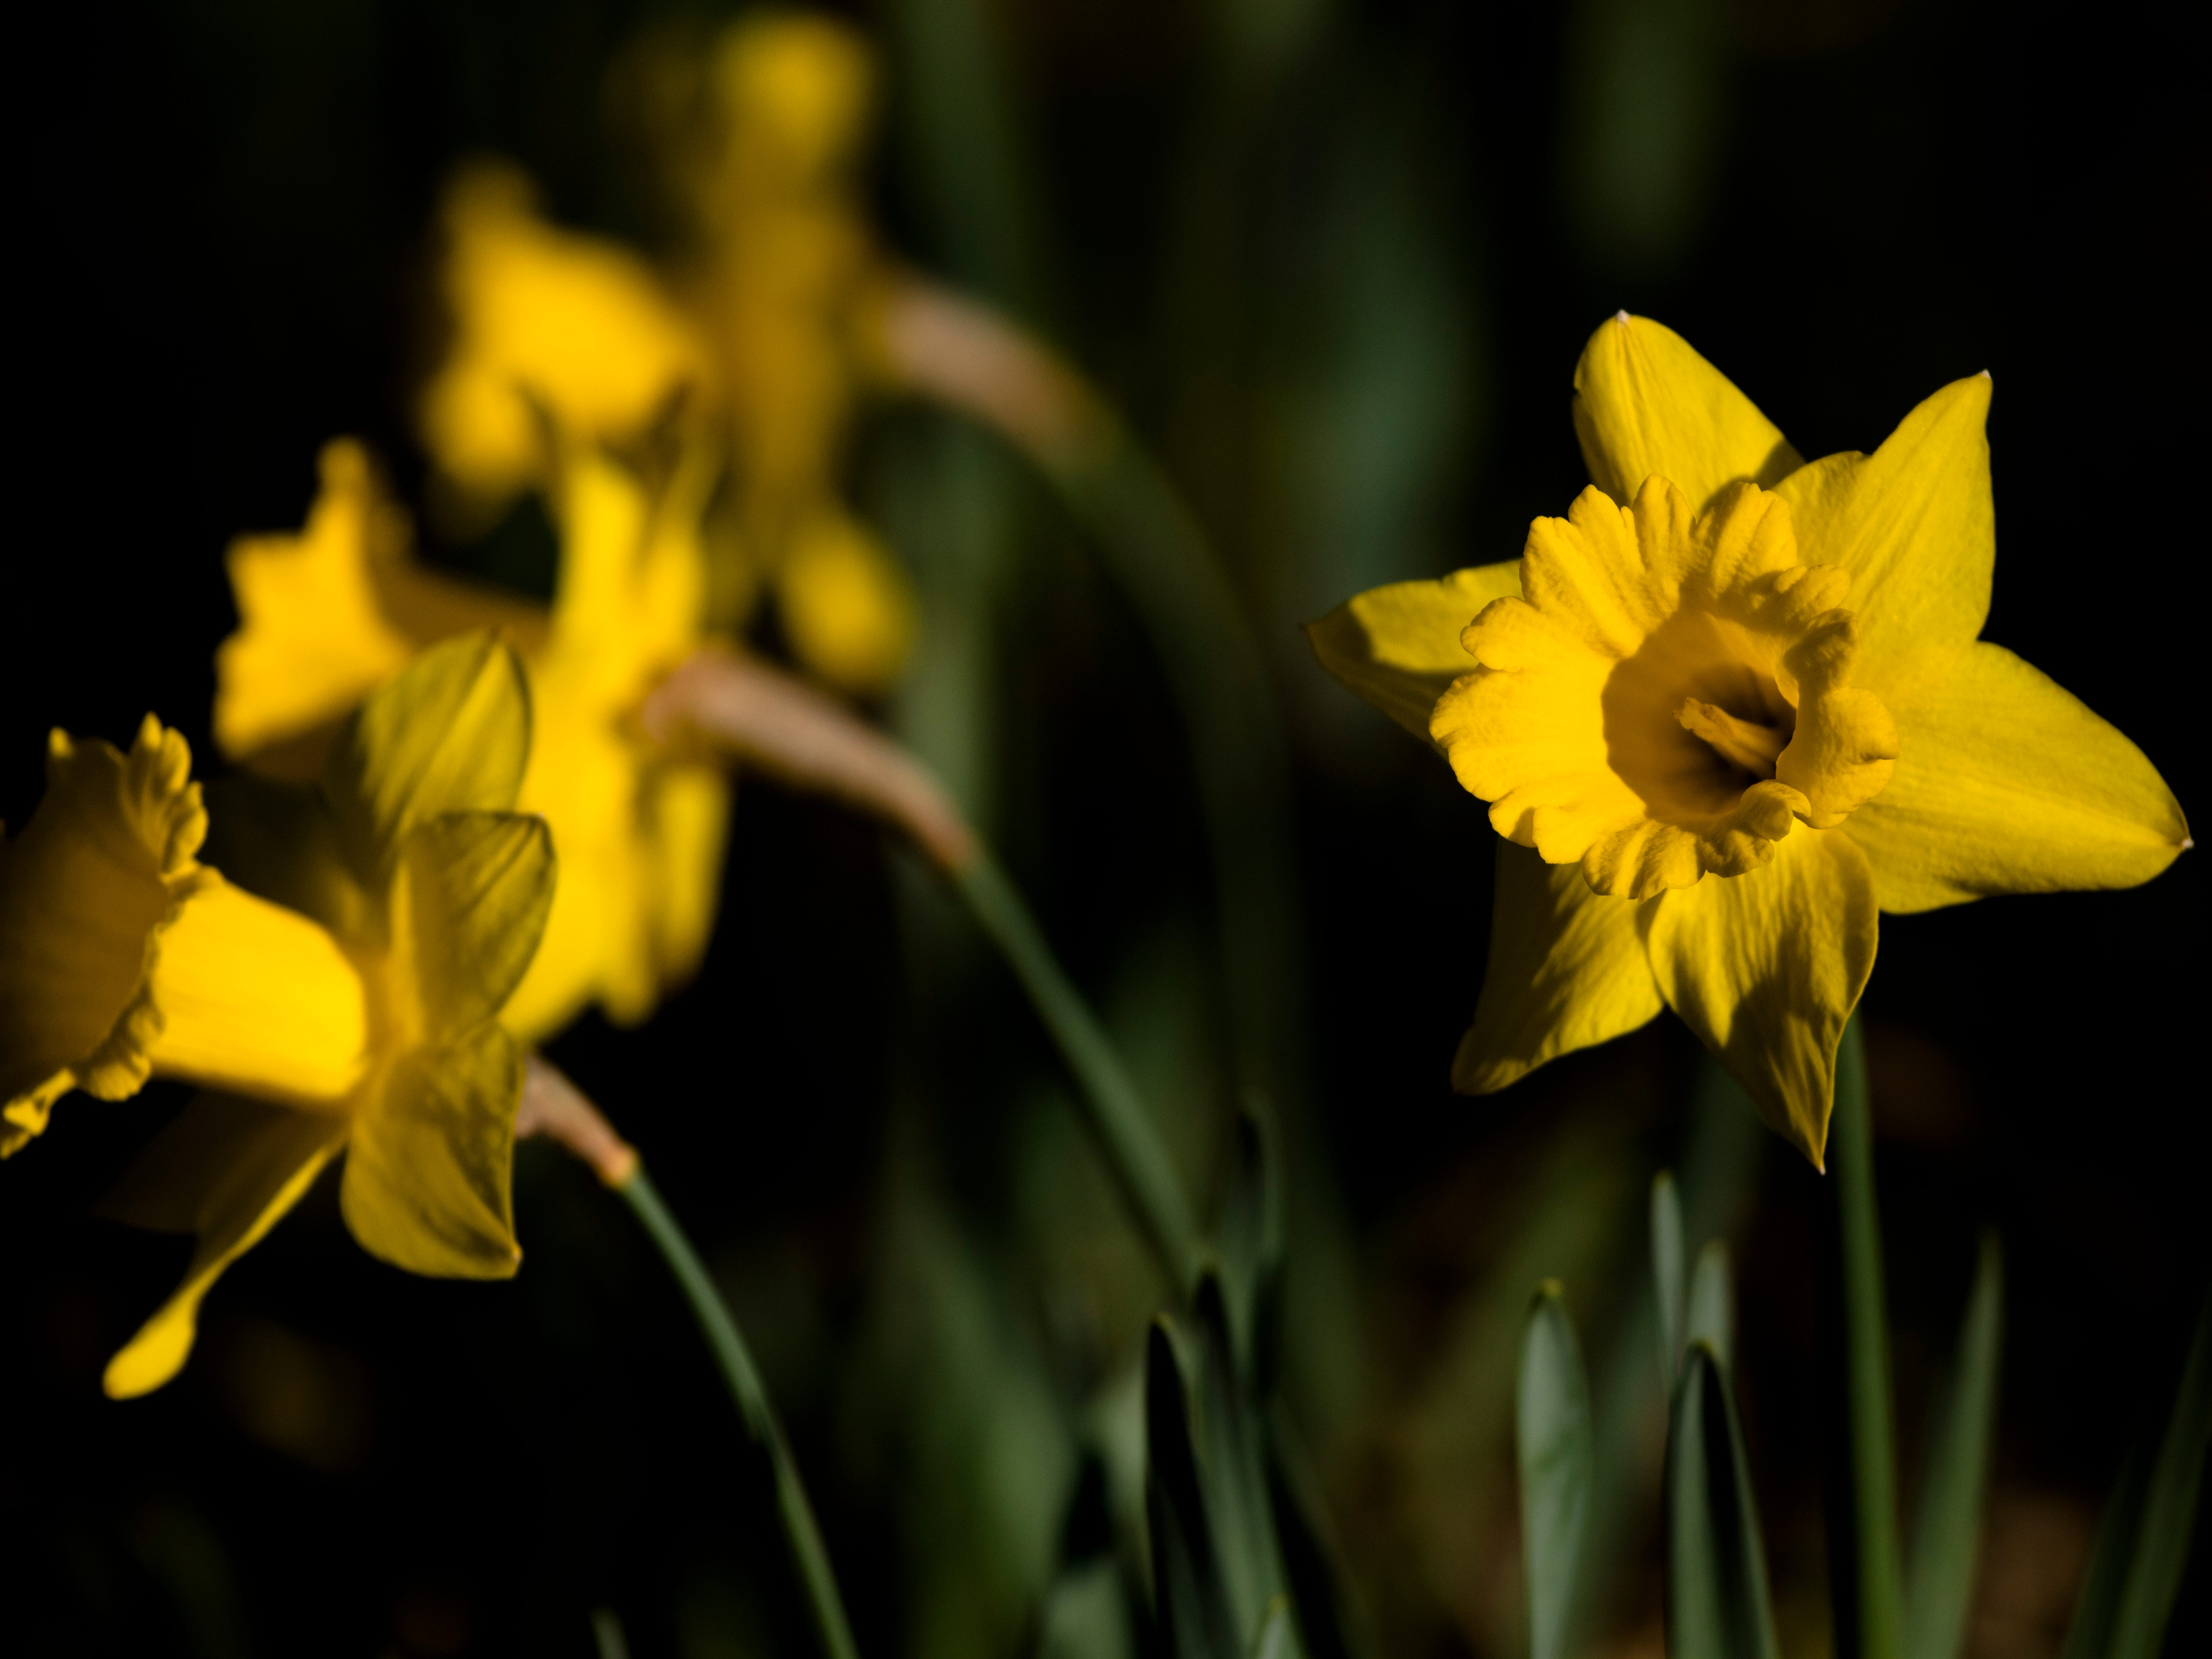 Daffodils bloom at Delhi Park in Delhi on Tuesday, April 9, 2019. Daffodil's contain poisonous sap, both for animals and other plants.